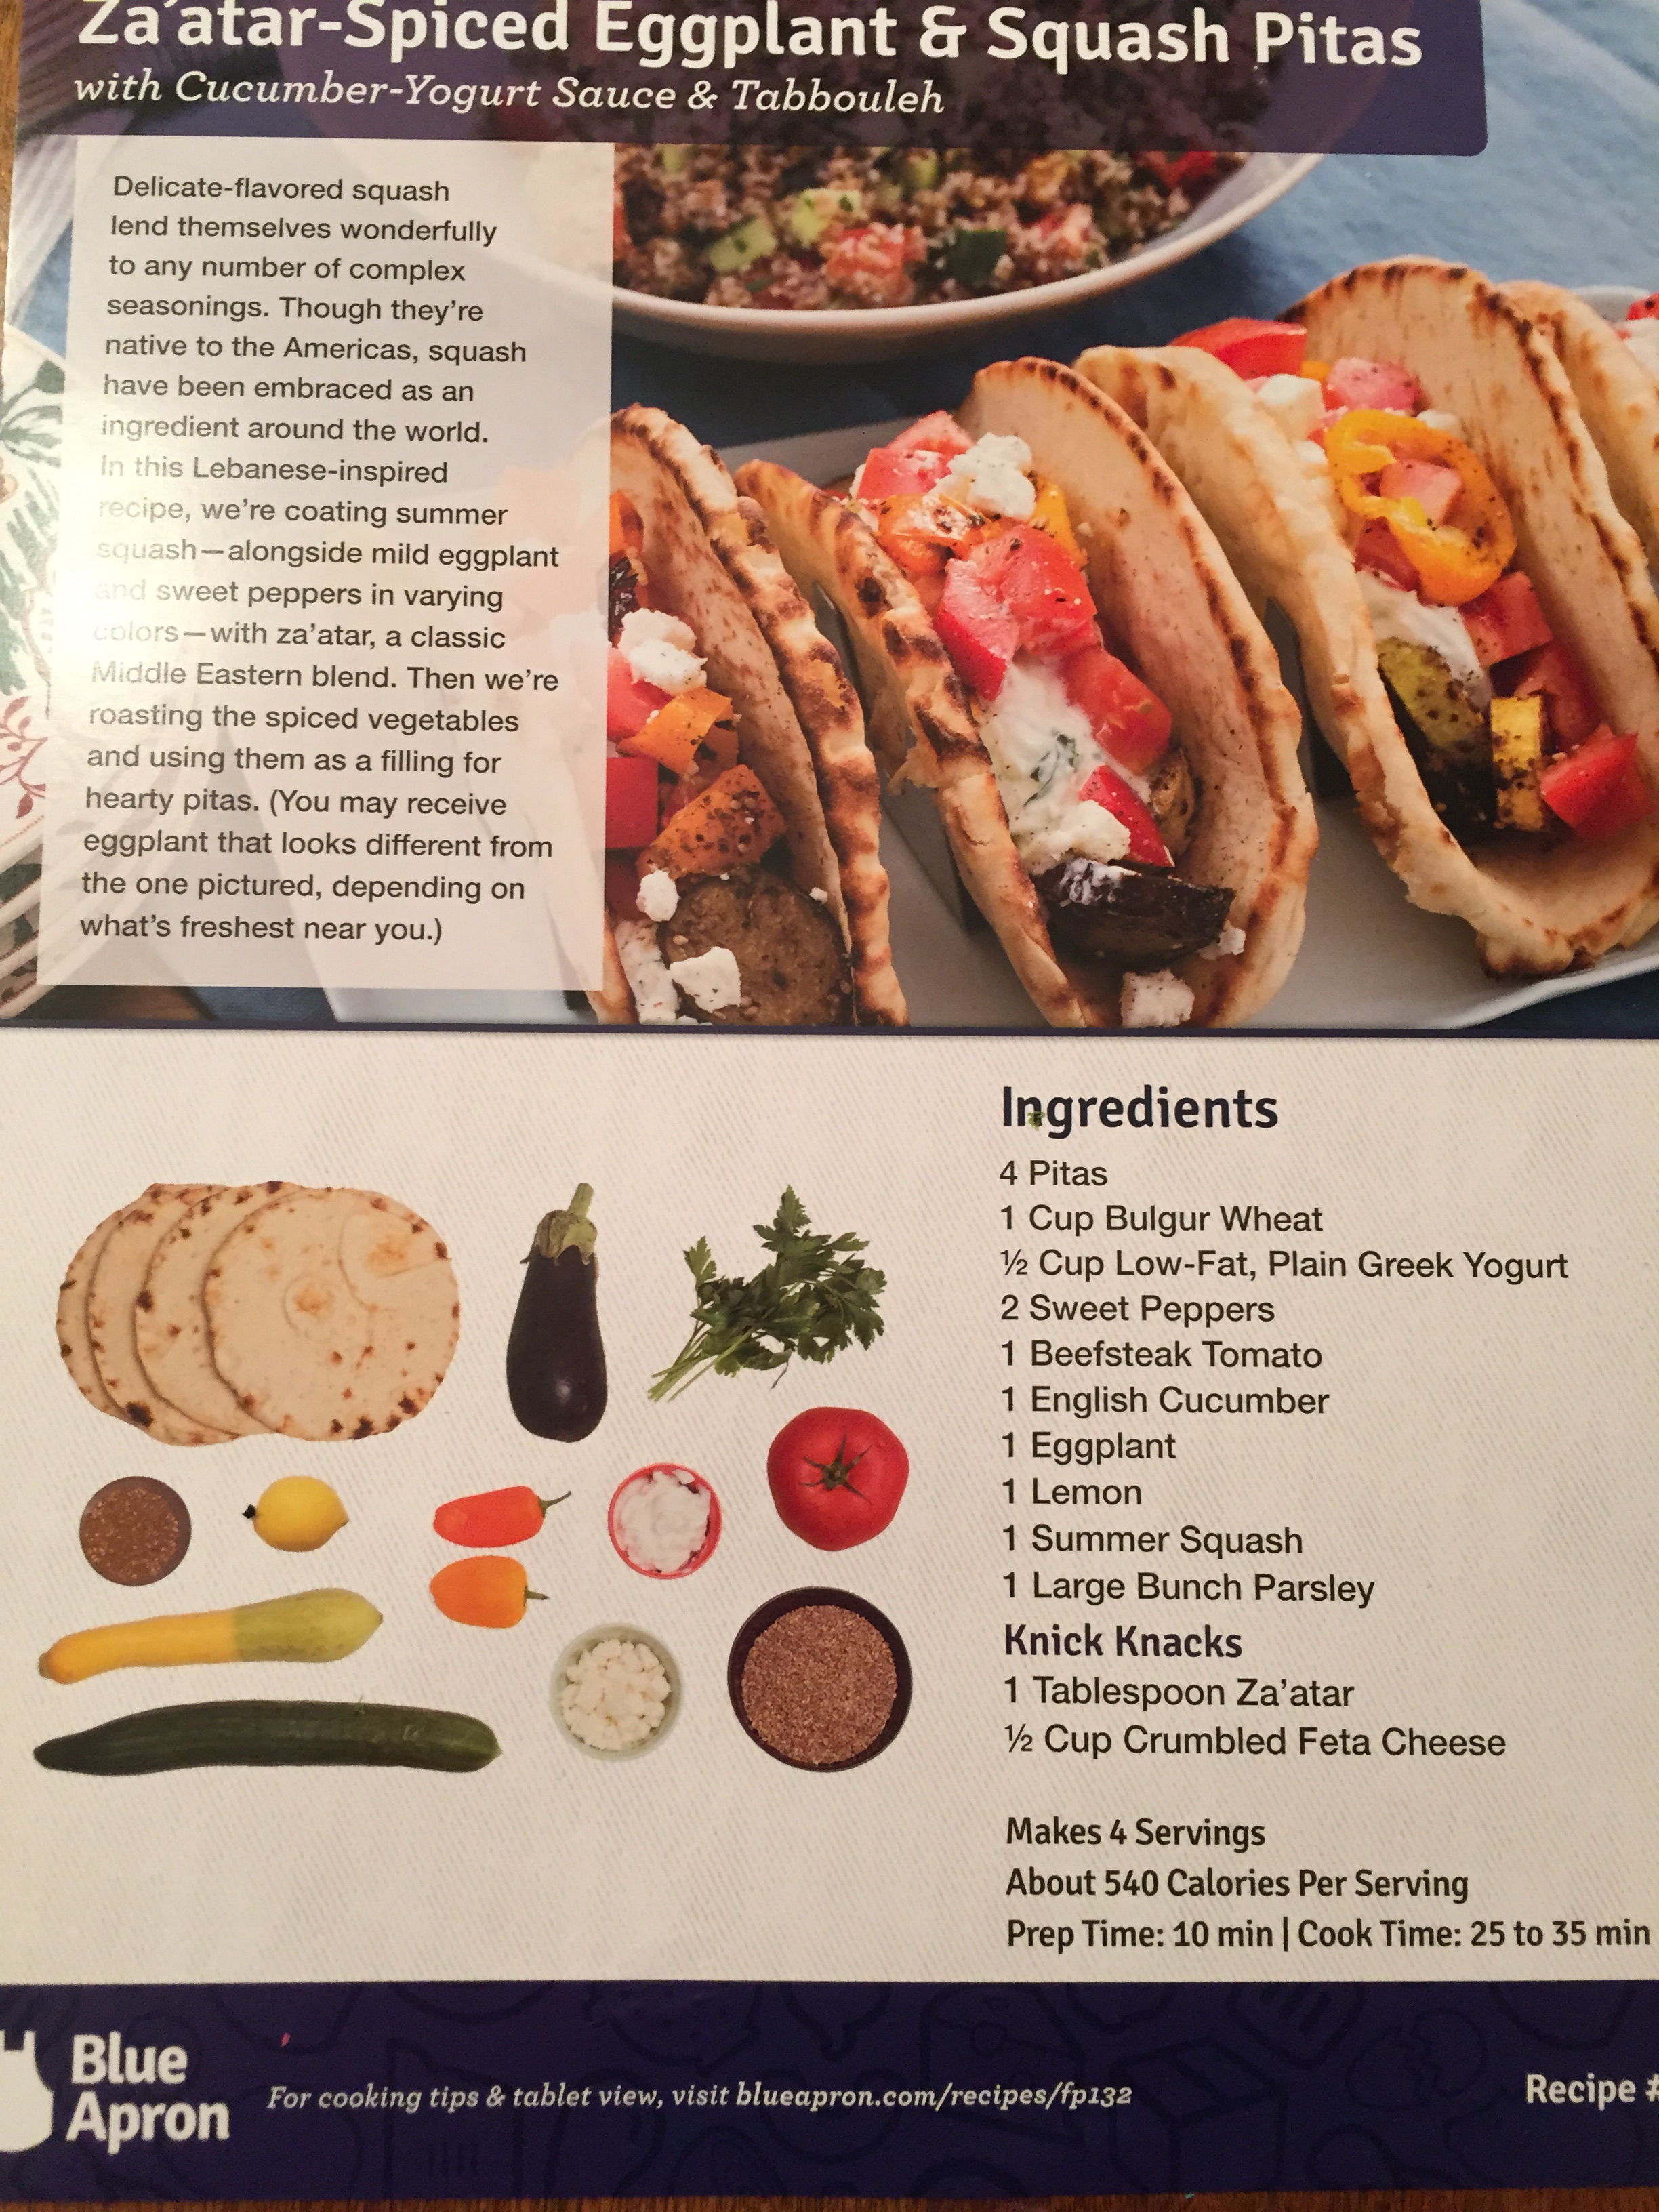 Blue apron yellow squash - The Filling Of The Pita Consisted Of Roasted Squash Eggplant And Tomato Which I Went Off Recipe Here And Roasted The Beautiful Beefsteak Tomato Blue